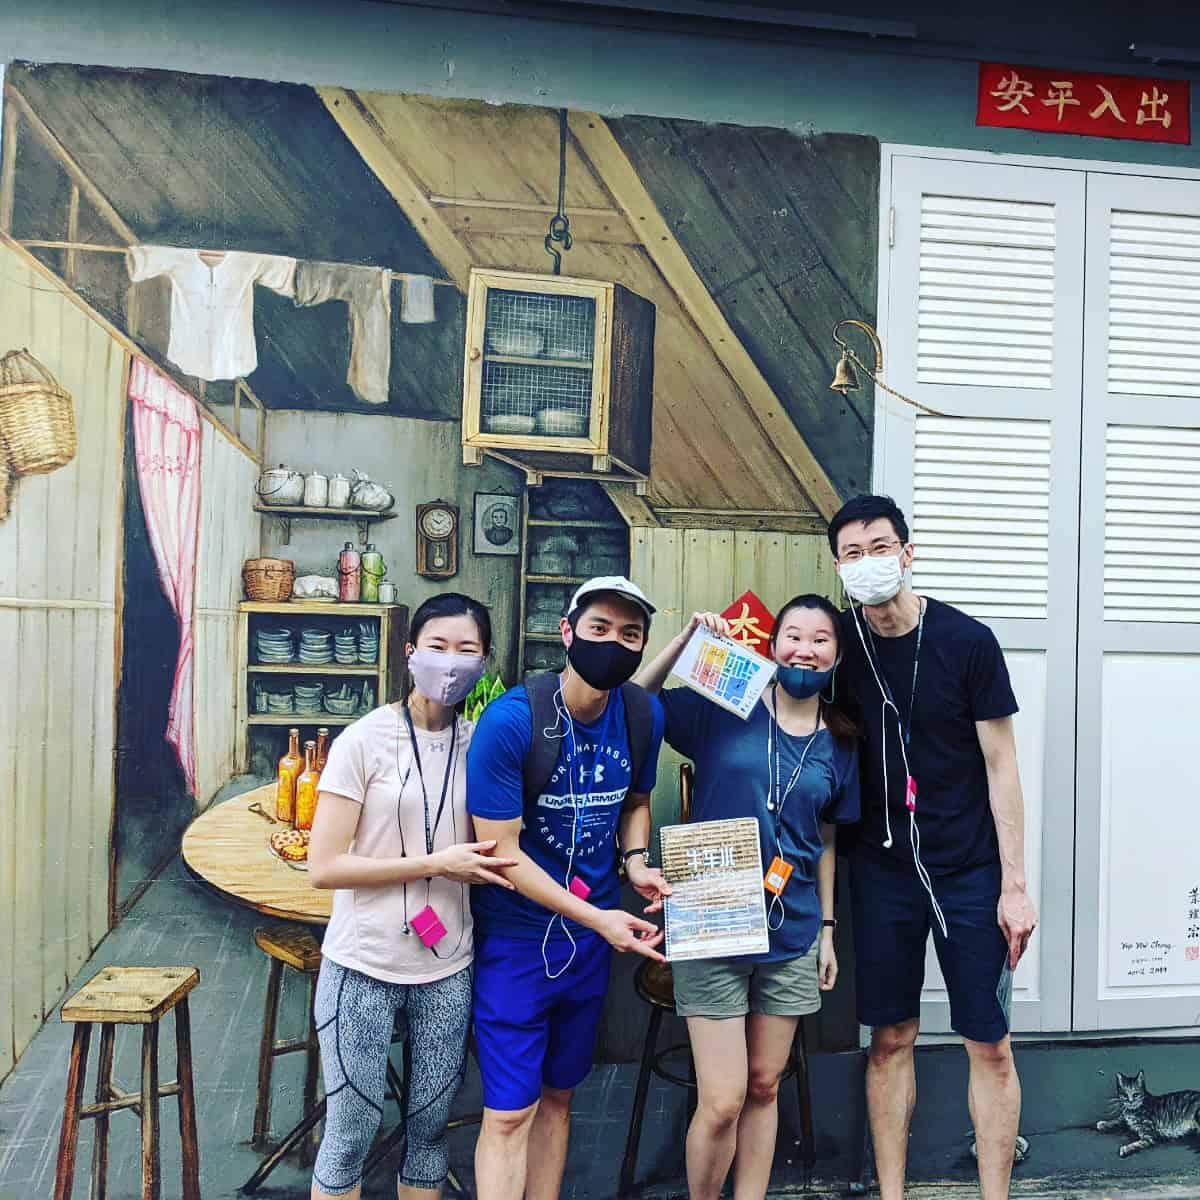 tribe-chinatown-murders-game-escape-room-heartland-boy